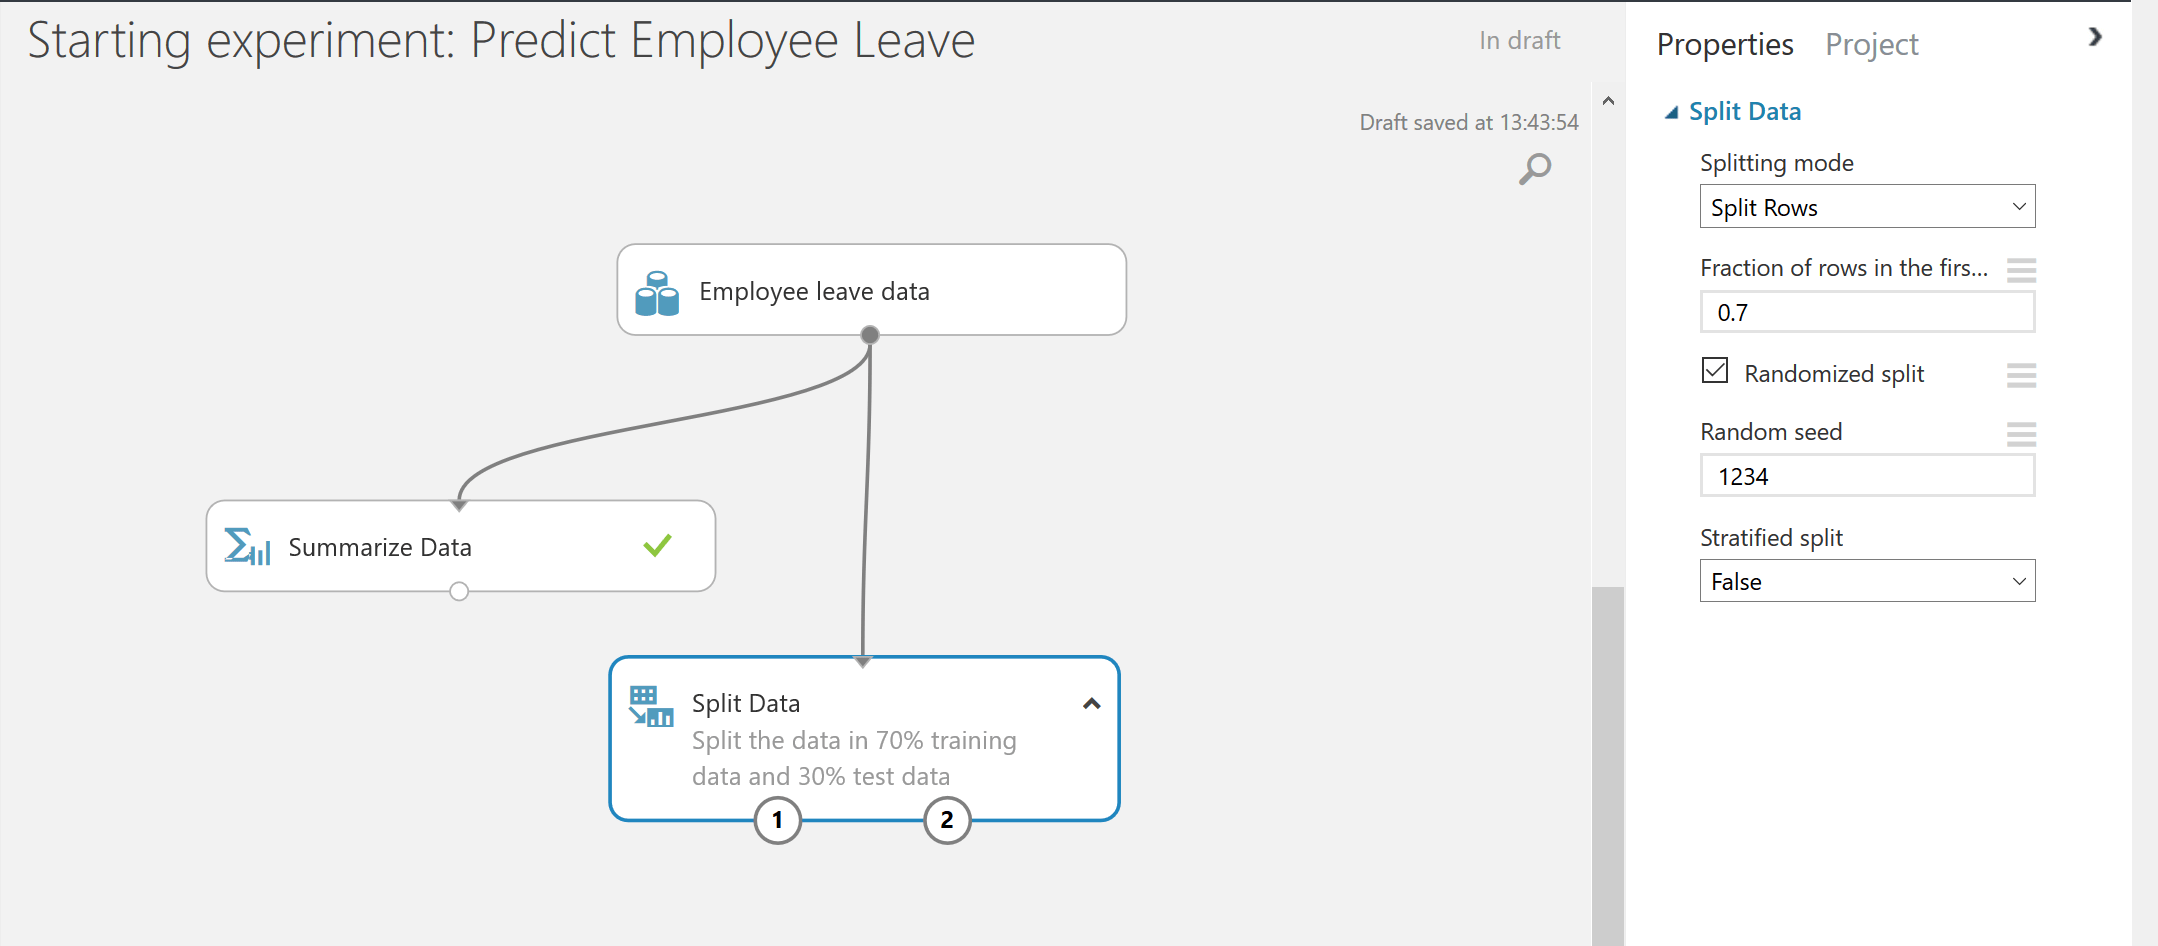 Predict employee leave - an example of Human Resources Analytics